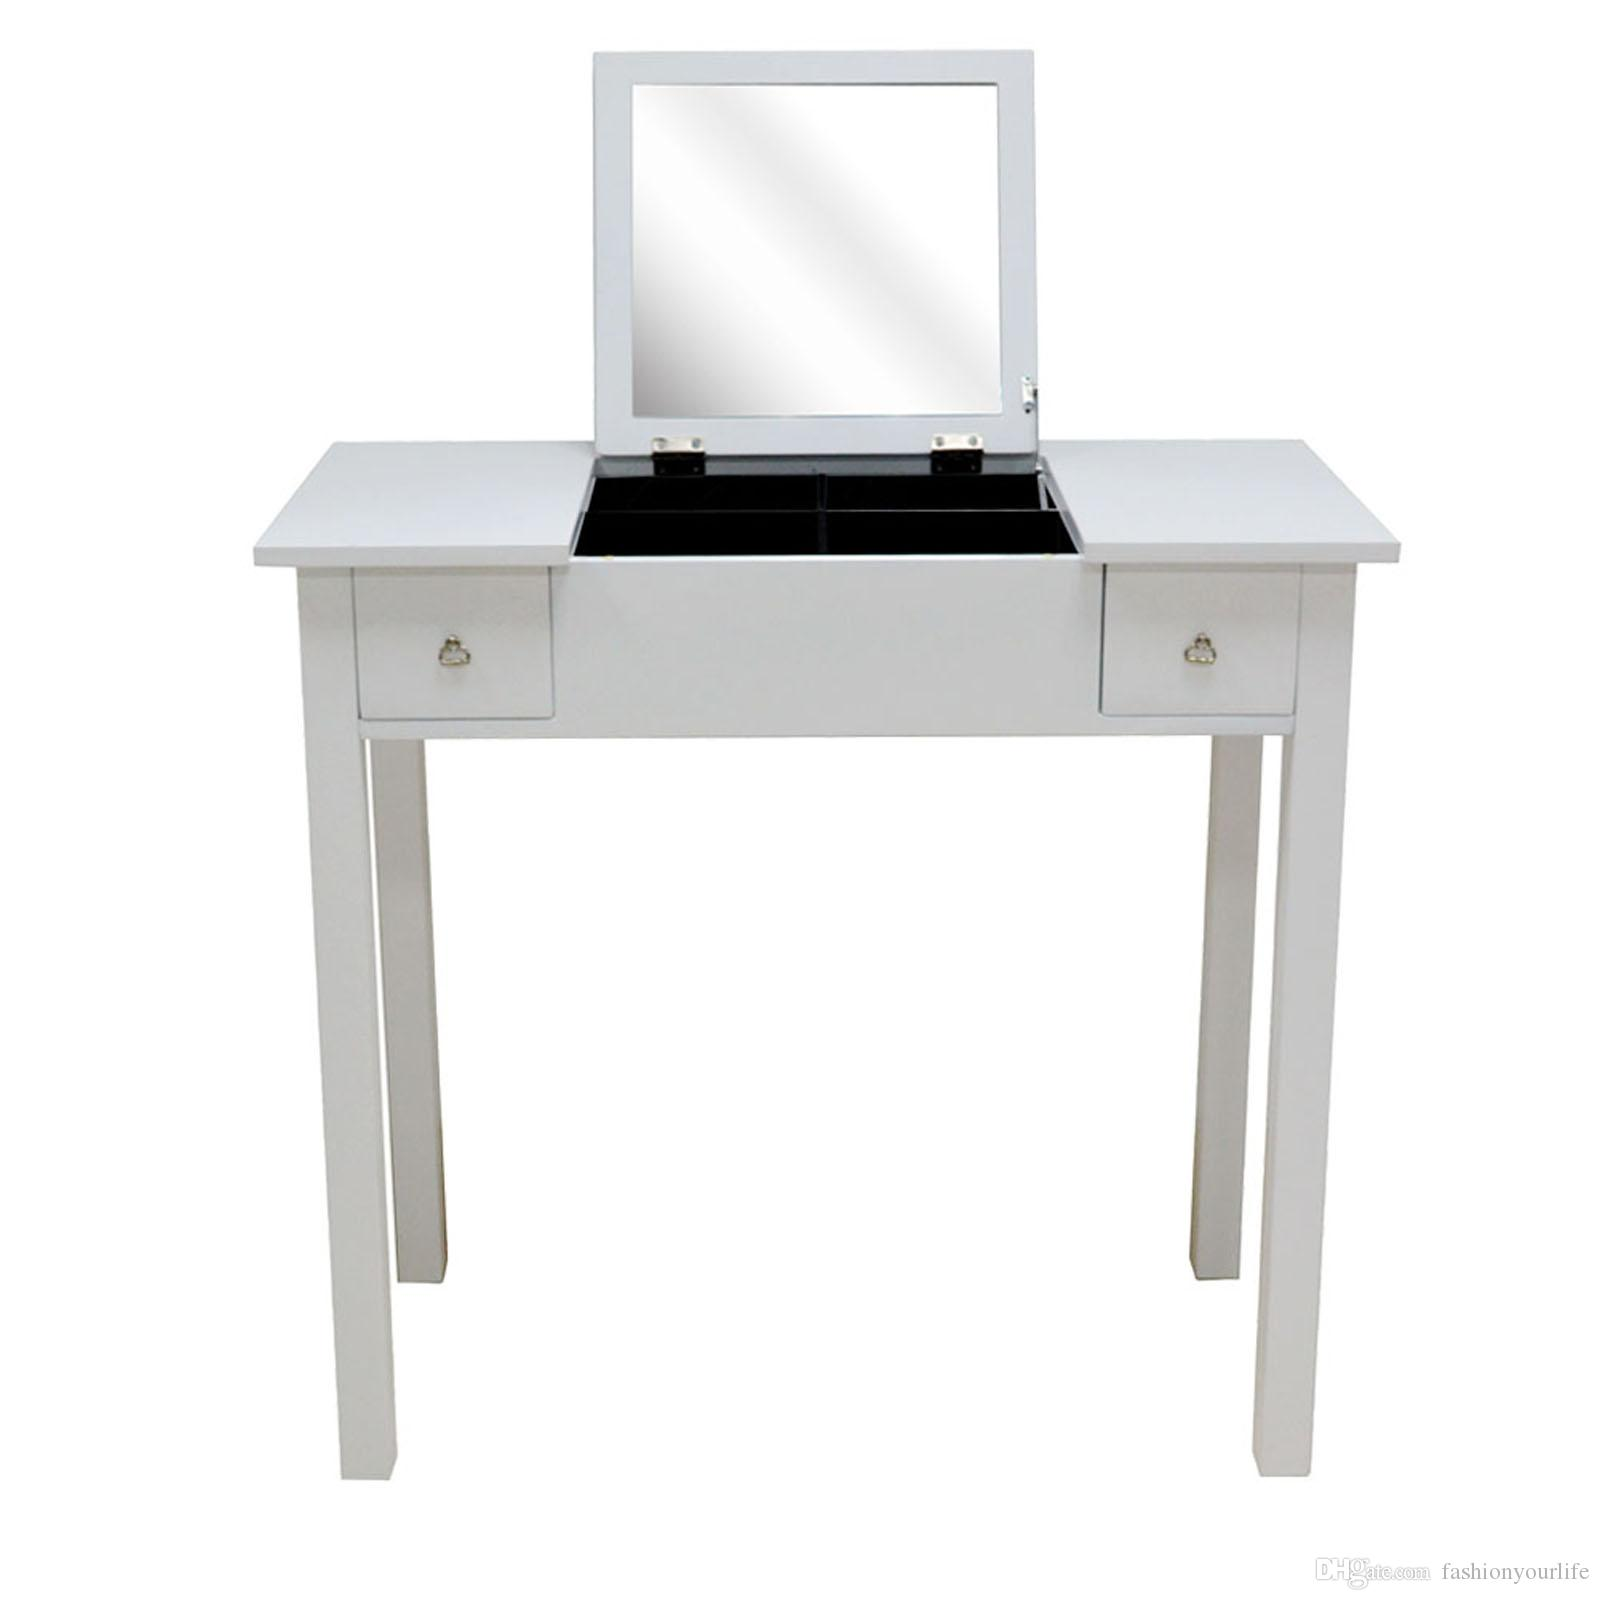 Dressing Mirror Cabinet Bedroom Furniture Dressing Table With Mirror Vanity Makeup Table